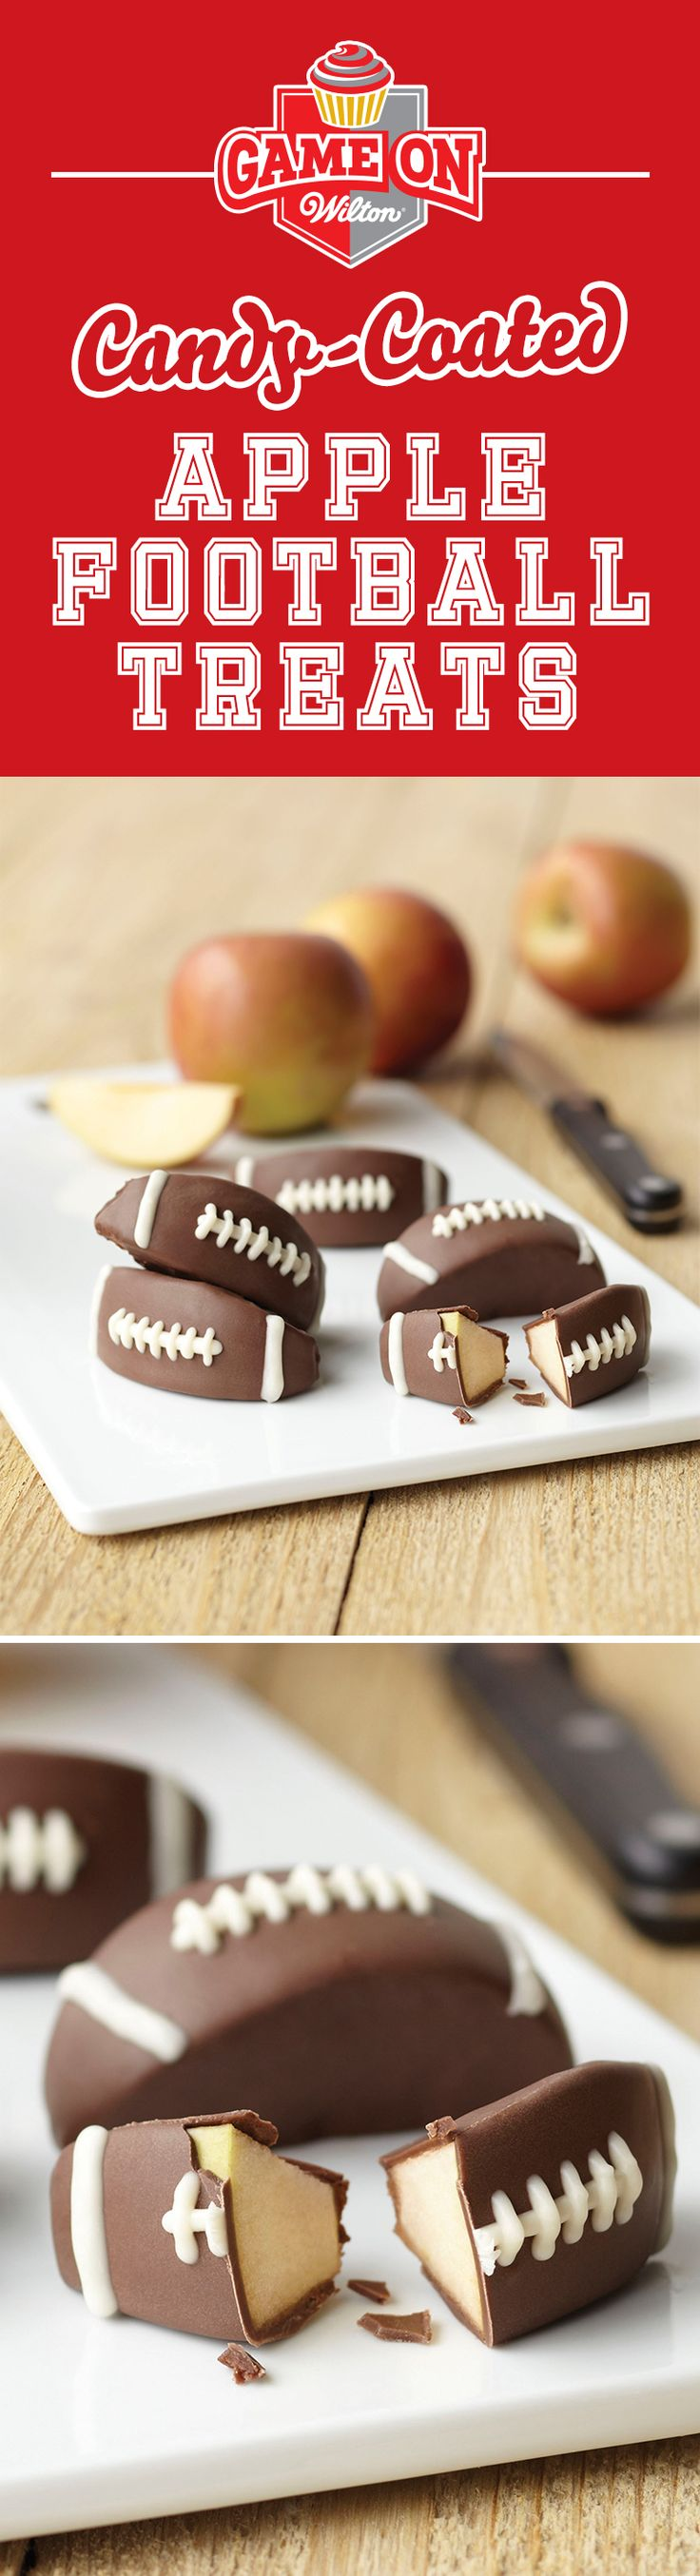 How to Make Candy-Coated Apple Football Treats - Dipped apple wedges decorated like footballs make a sweet treat for your favorite playoff celebration, tailgate party or after-game snack for the tiniest tackle on the team. Use Wilton Short Dipping Containers to easily dip apple wedges in delicious Candy Melts candy.